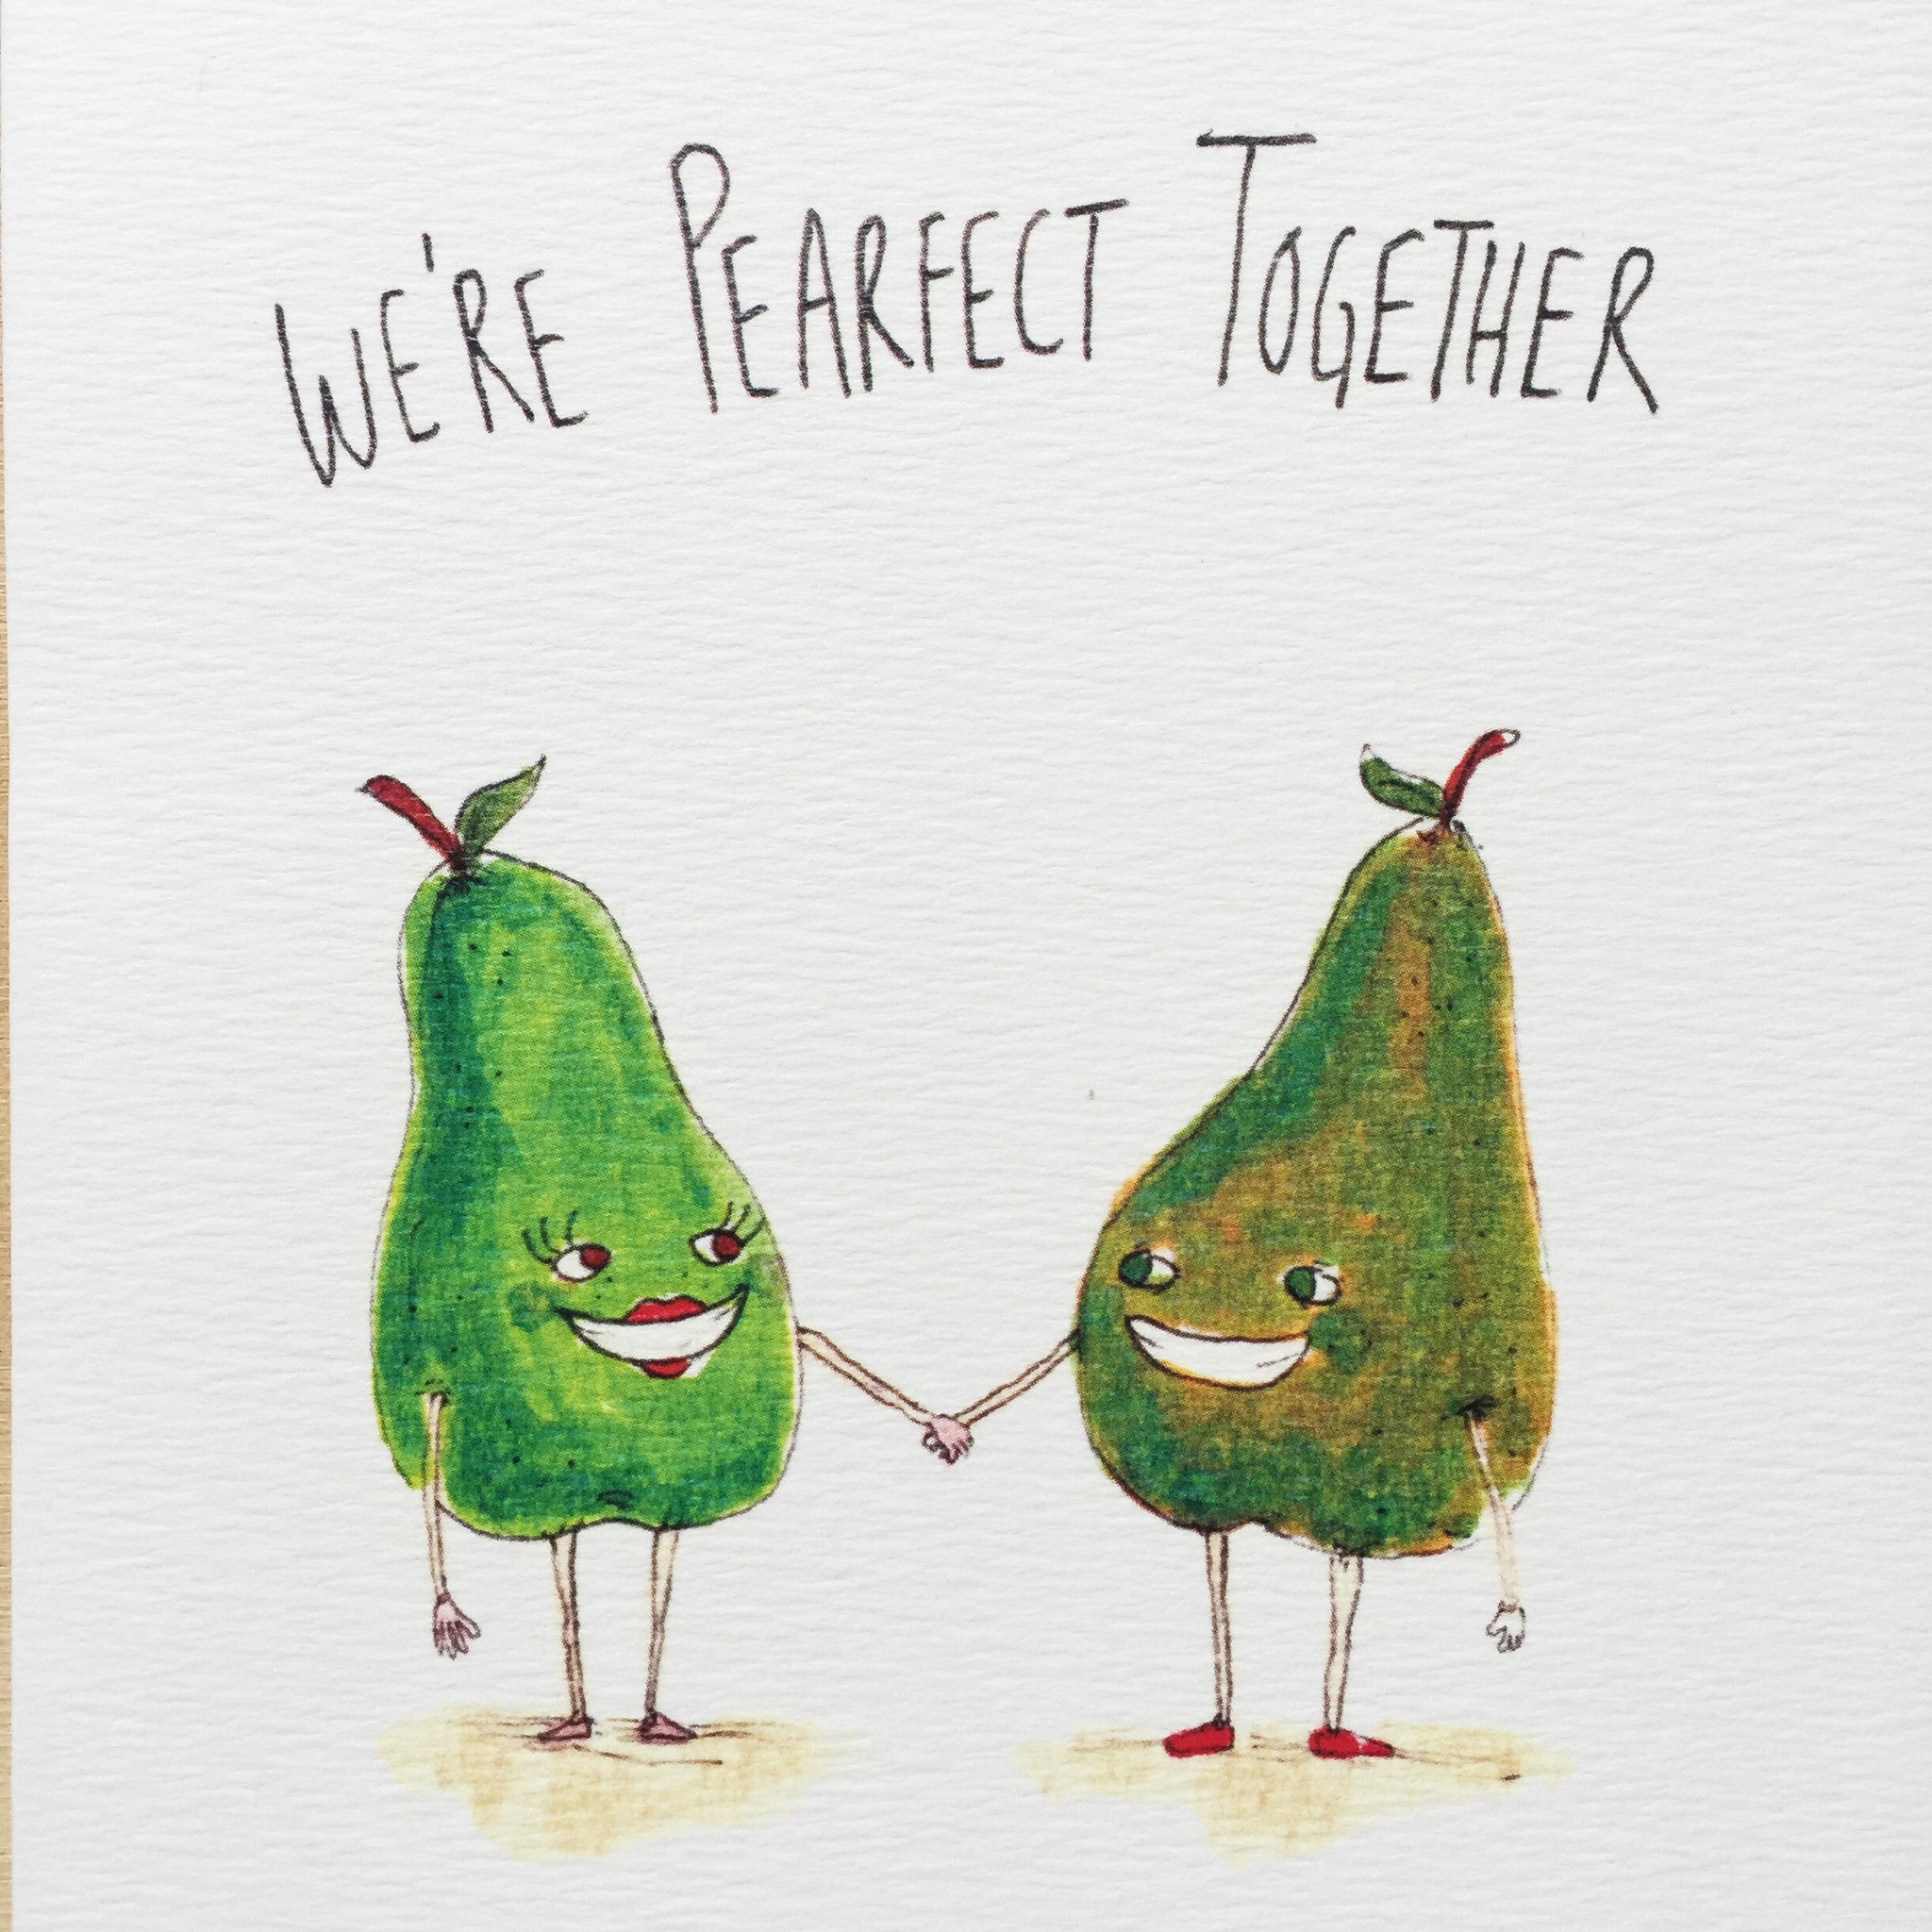 We're Pearfect Together - Well Drawn